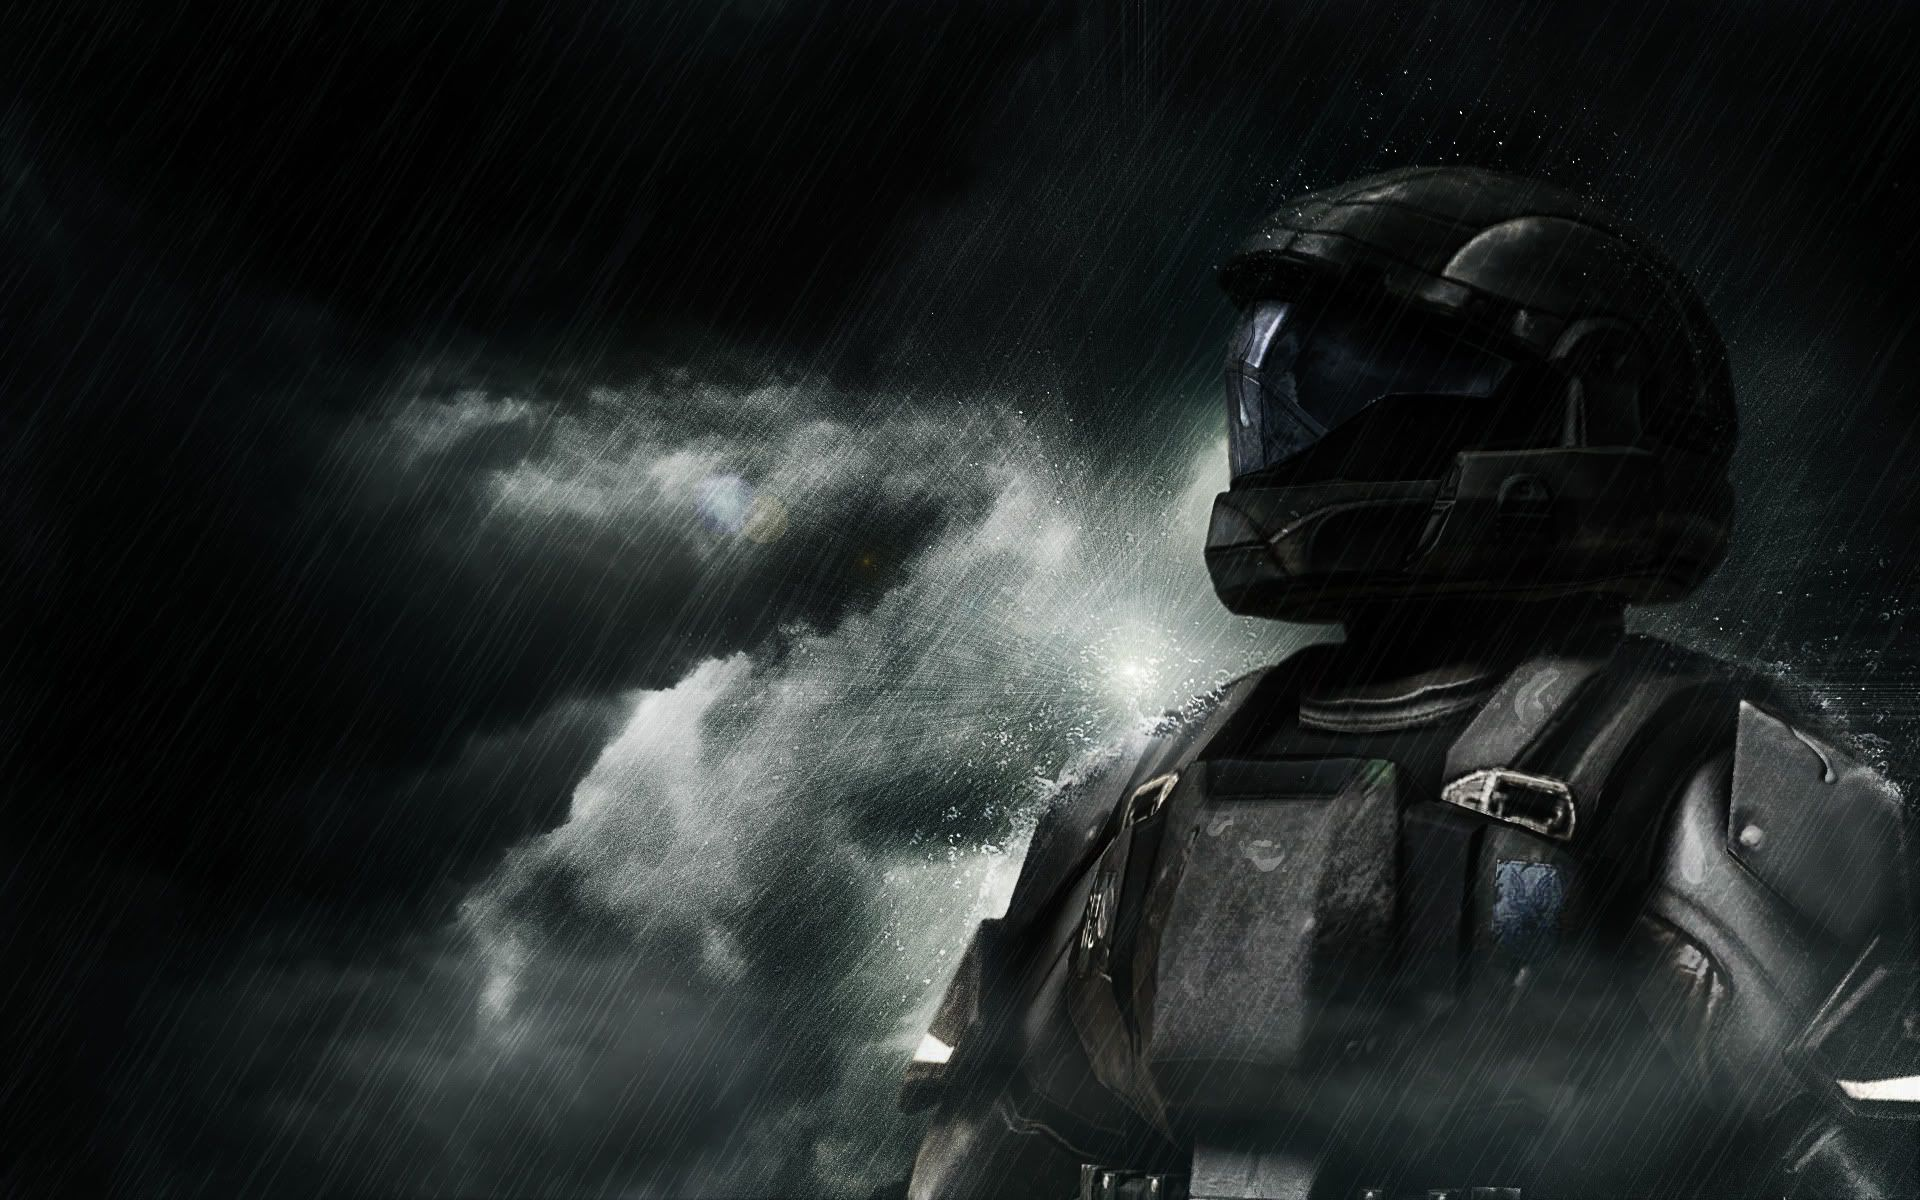 Halo 3 Wallpapers HD - Wallpaper Cave